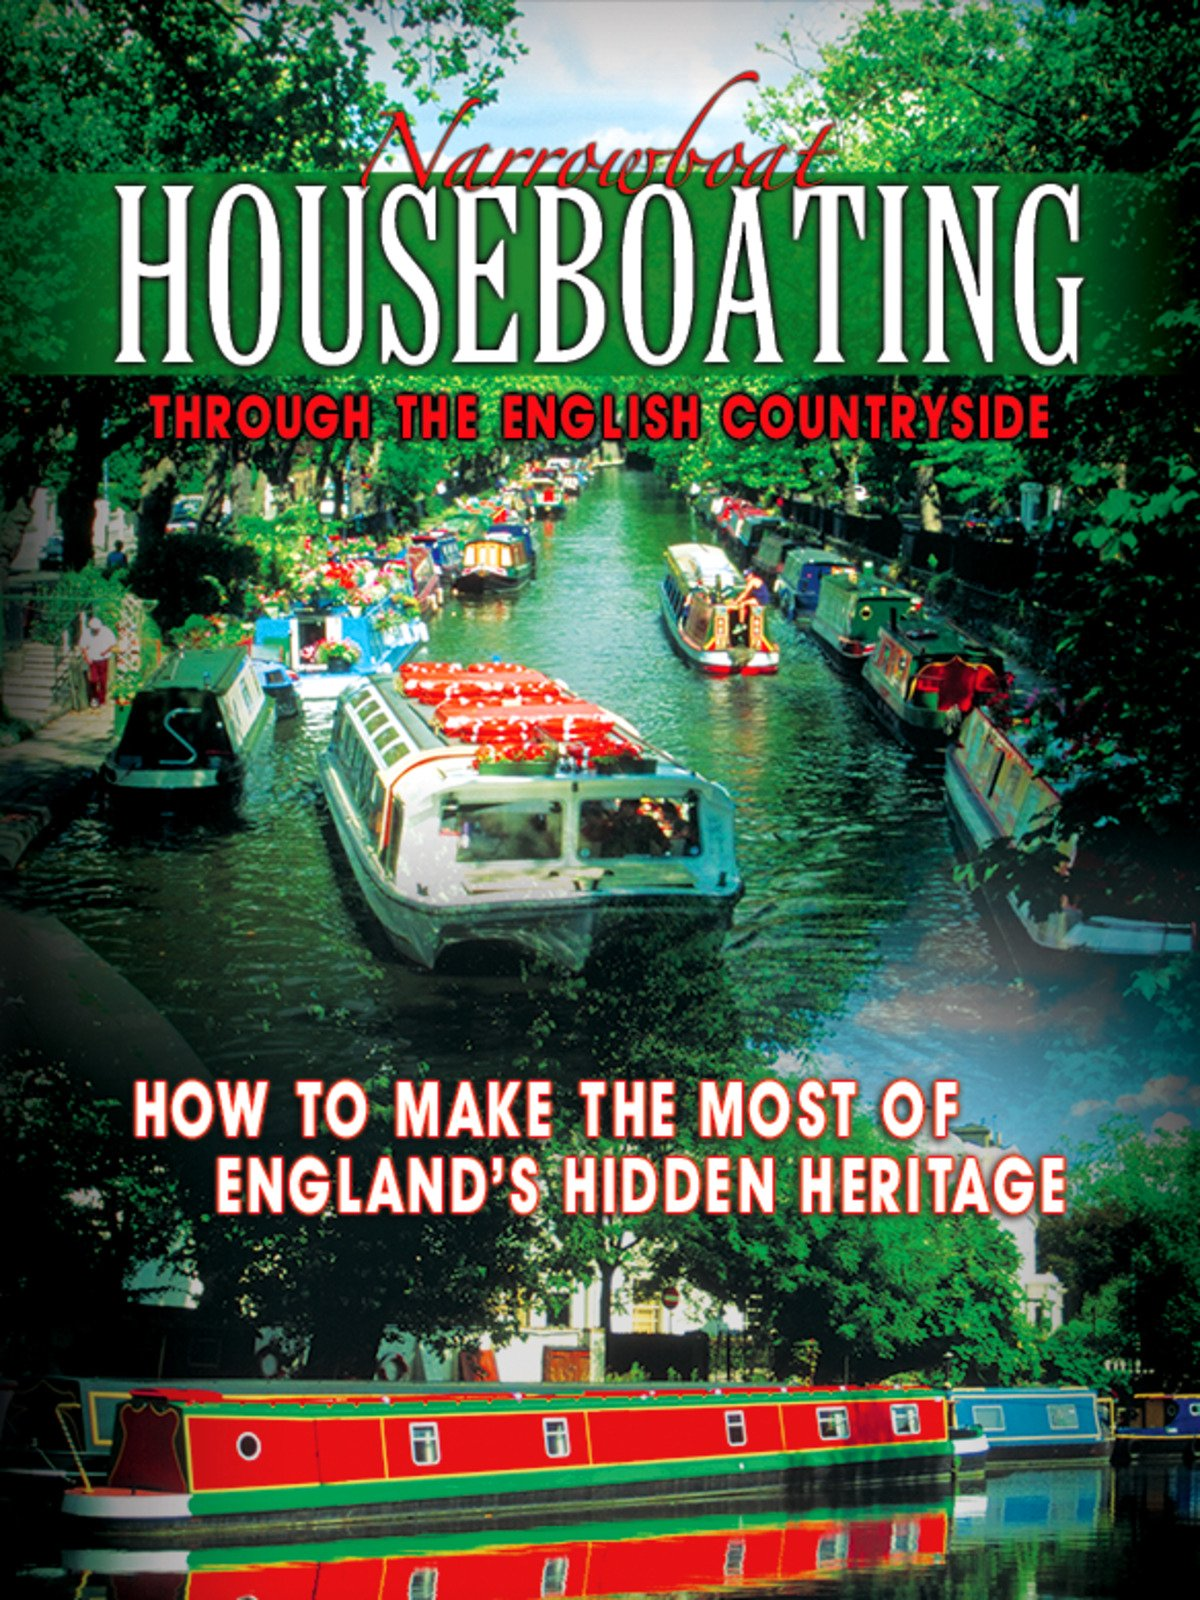 Narrowboat Houseboating Through the English Countryside: How to Make the Most of England's Hidden Heritage